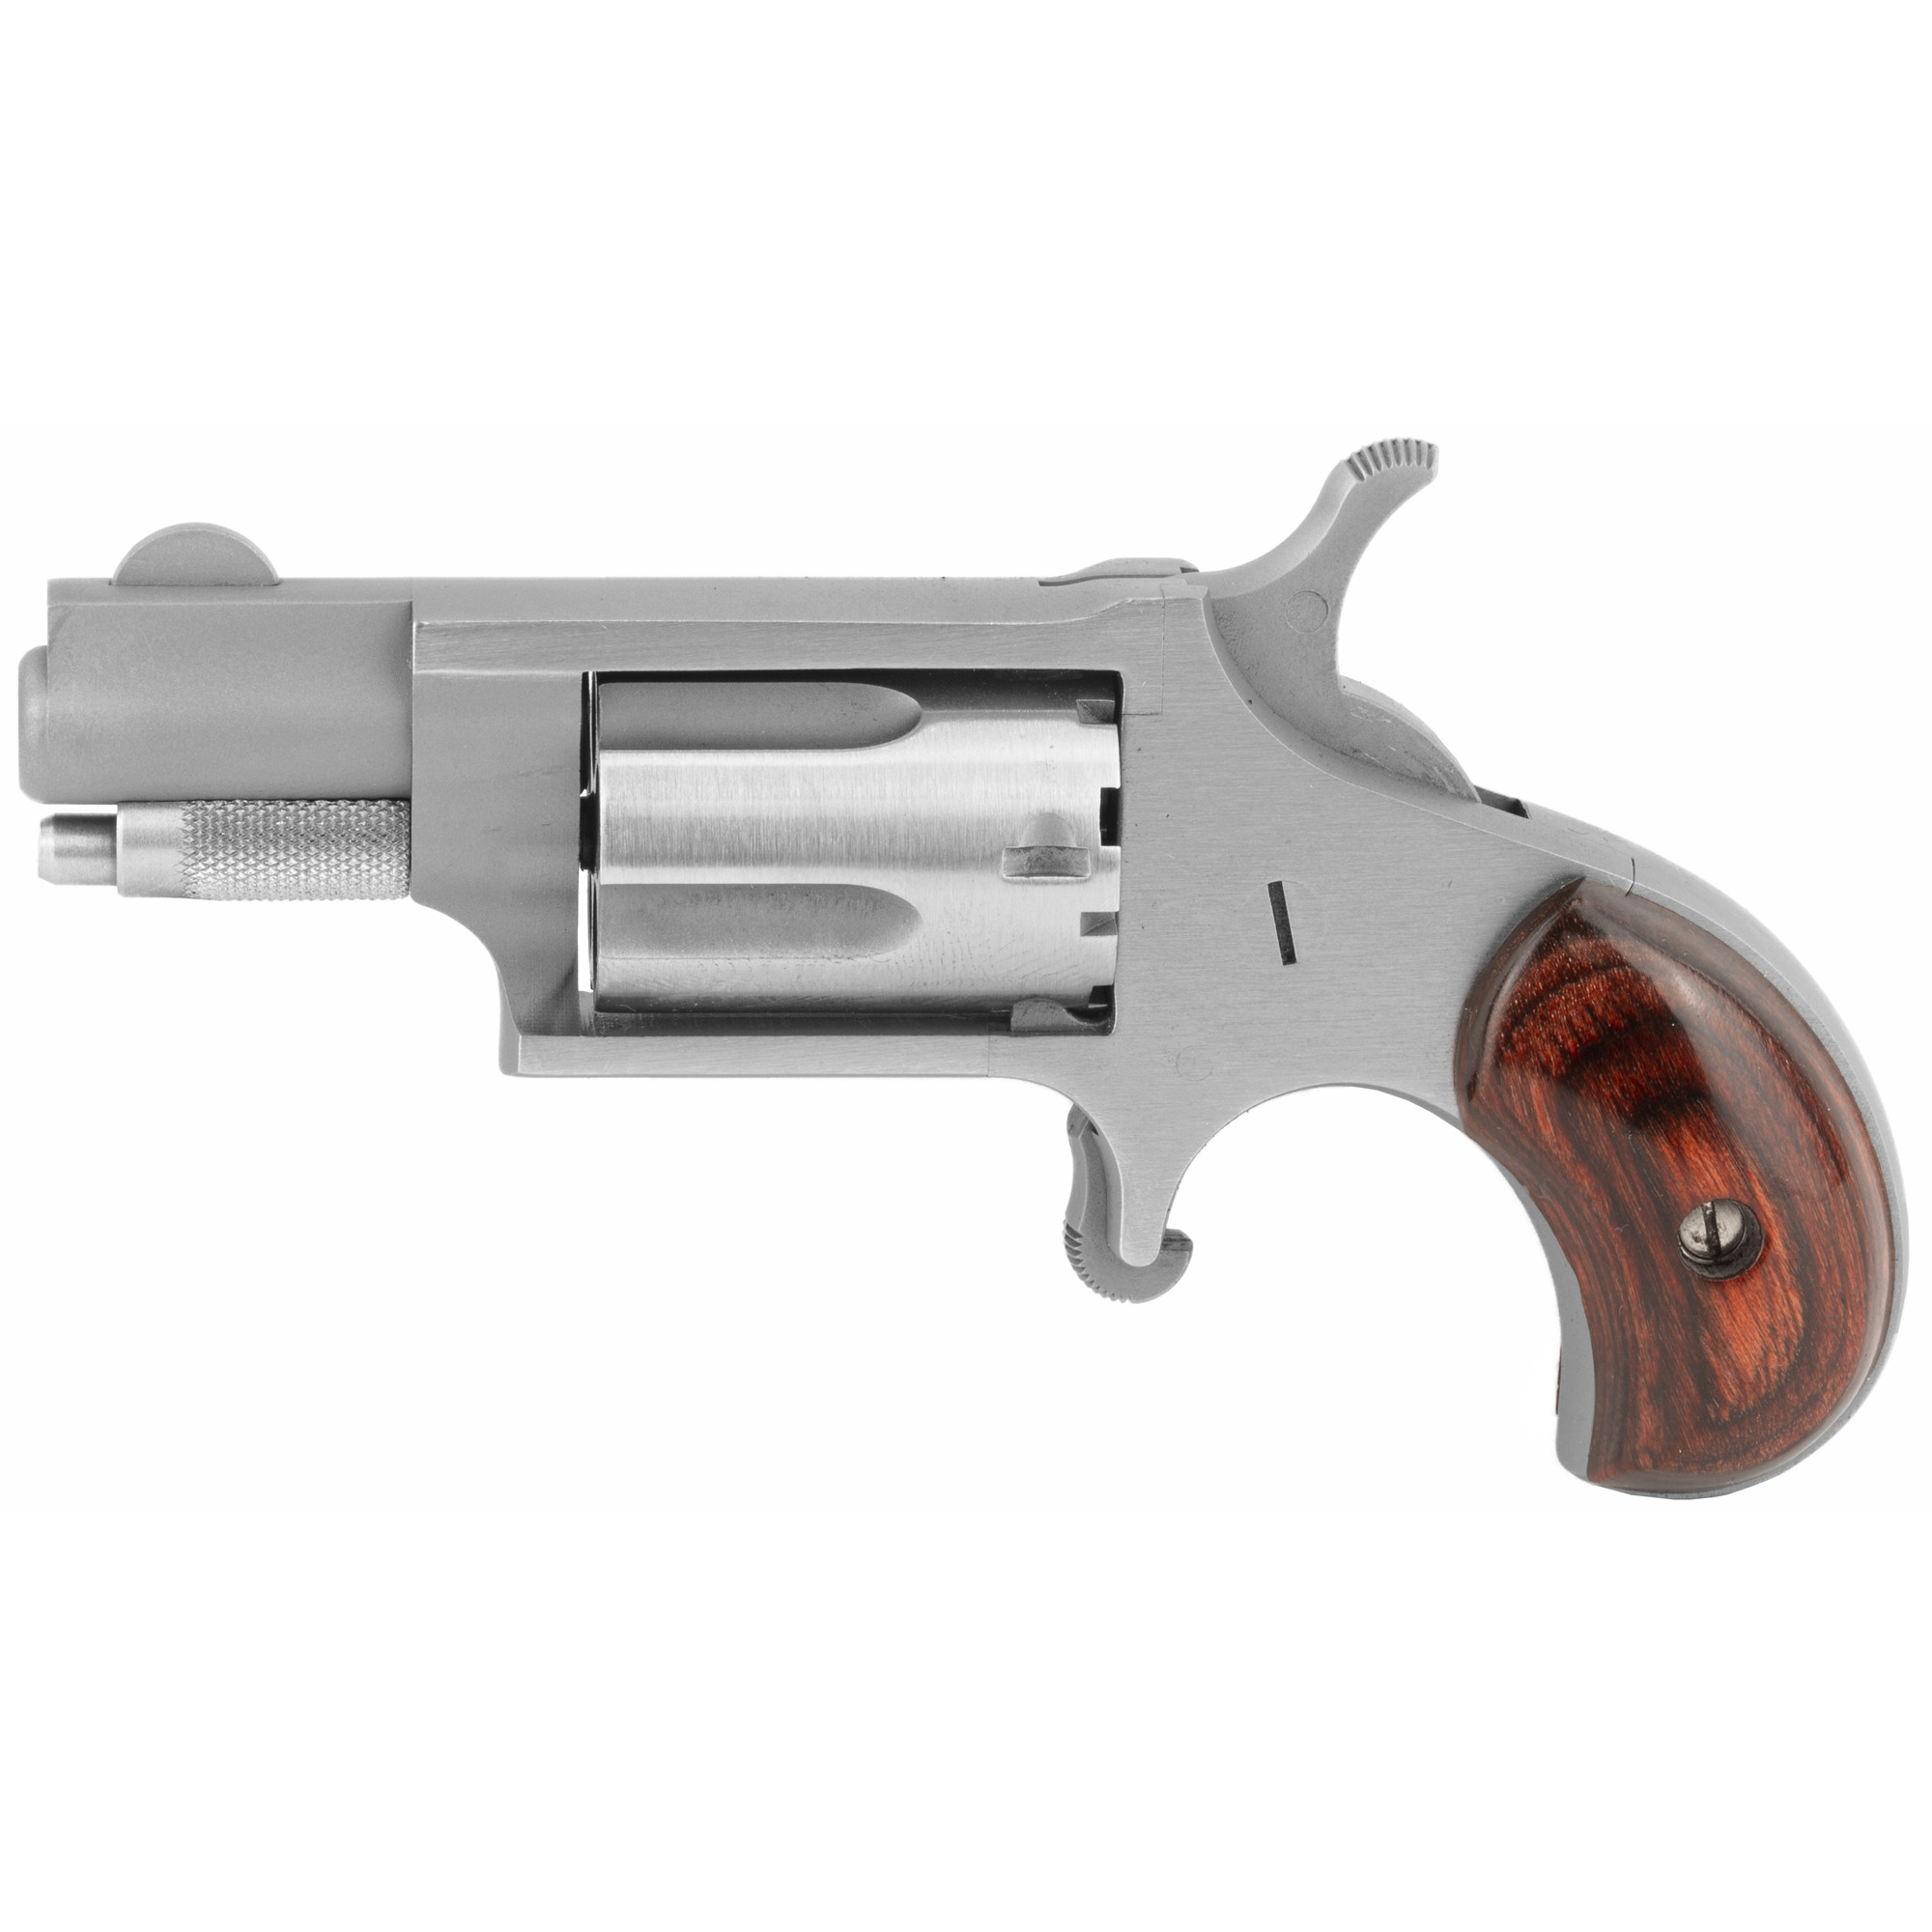 "The NAA .22 Long Rifle is the most popular Mini-Revolver ever produced. With the many current accessories"" it is versatile for many applications and is the standard by which other Mini-Revolvers are judged. They offer their .22 Long Rifle Mini-Revolver in both a 1 & 1/8"" Barrel and a 1 & 5/8"" Barrel configuration. The NAA .22 Long Rifle with the 1 & 5/8"" Barrel makes a great addition to the NAA Mini-Revolver line. 5-Shot capacity."